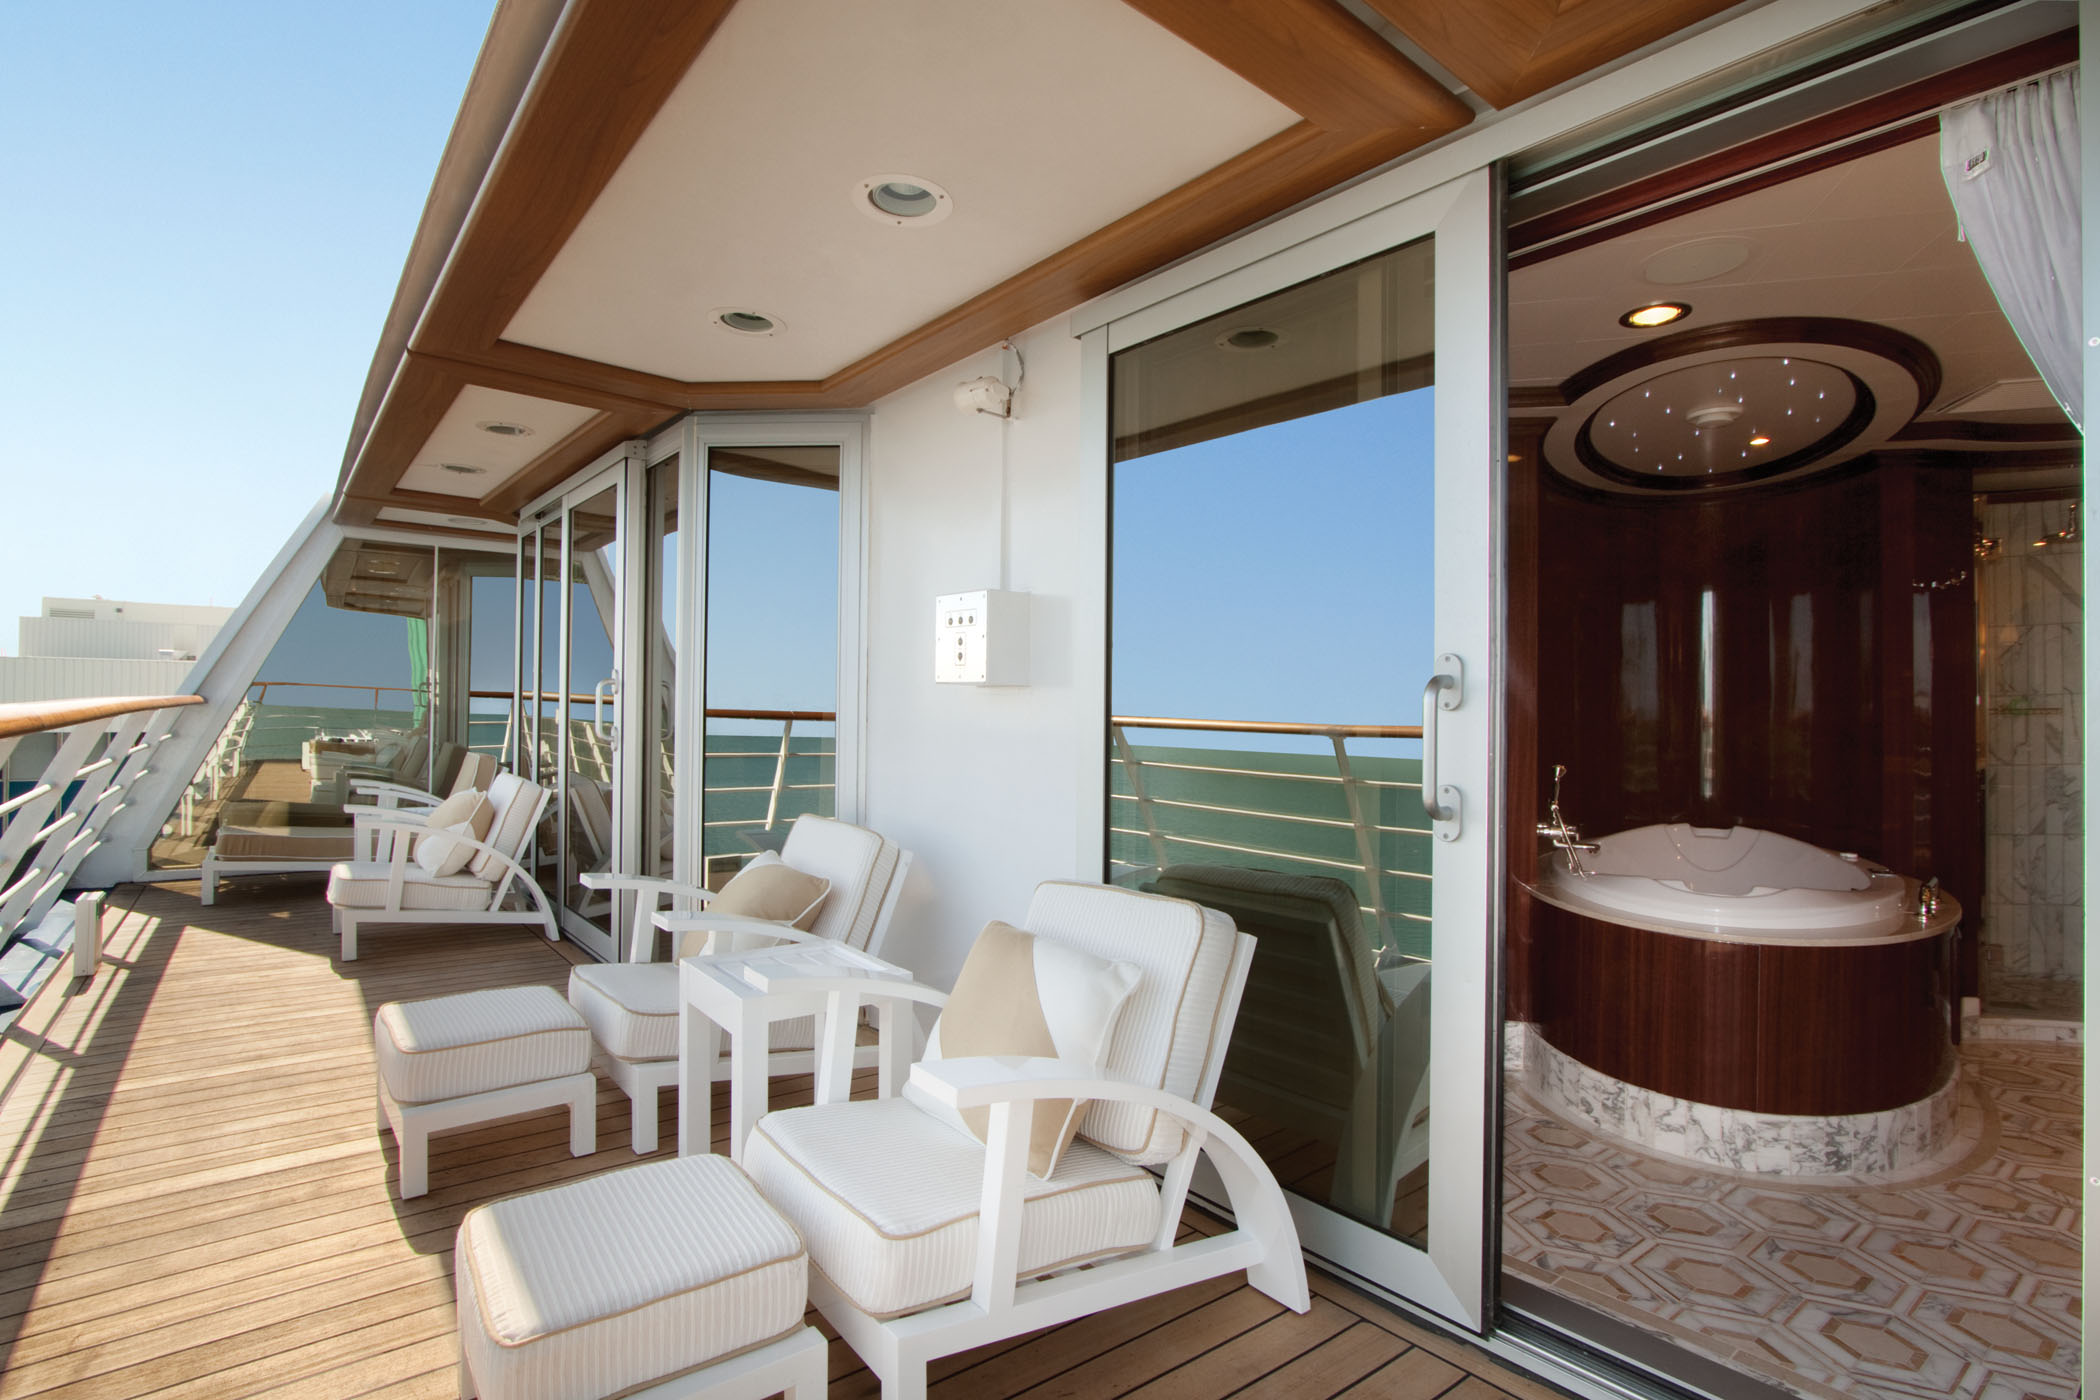 Oceania Cruises Oceania Class Accommodation Owners Suite Balcony.jpg